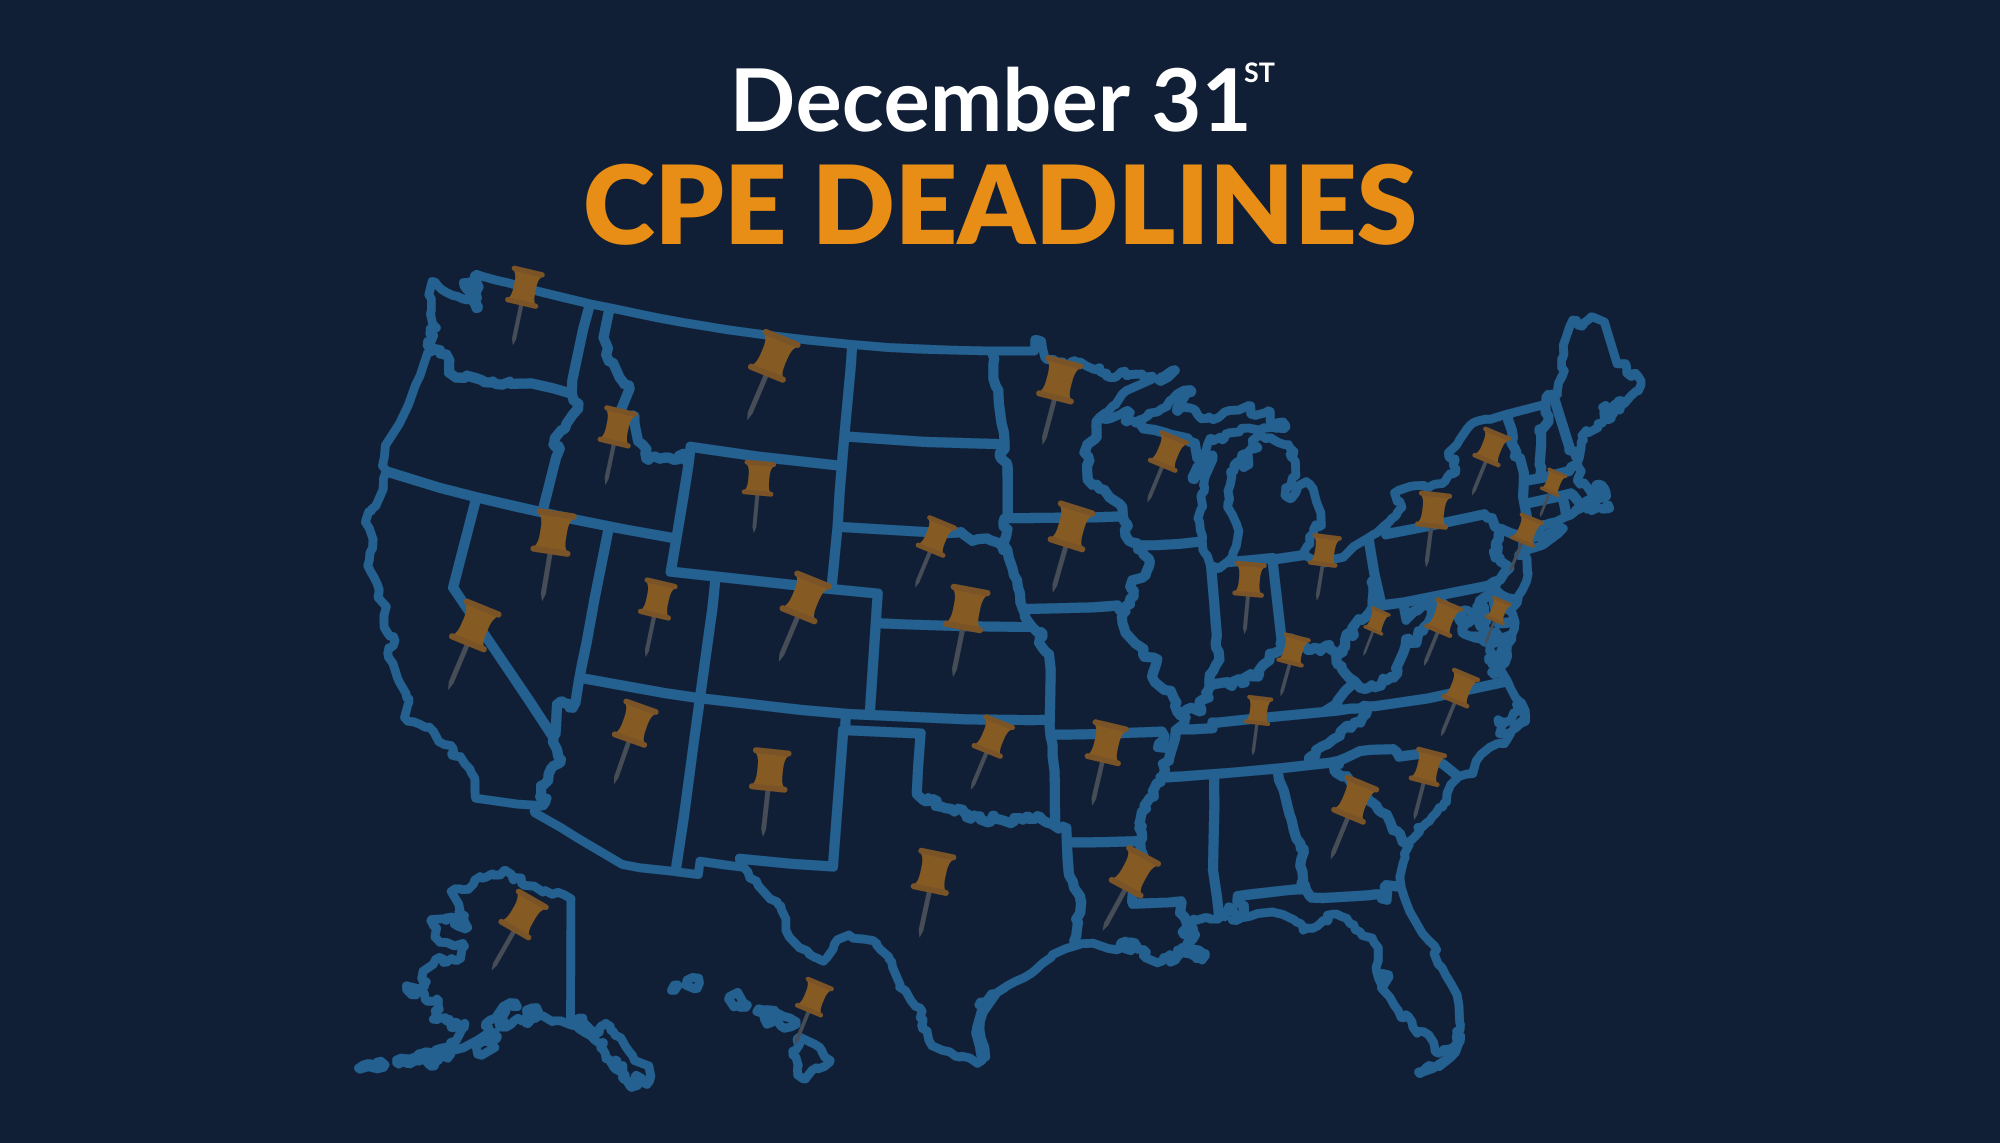 December 31st CPE Deadlines by State